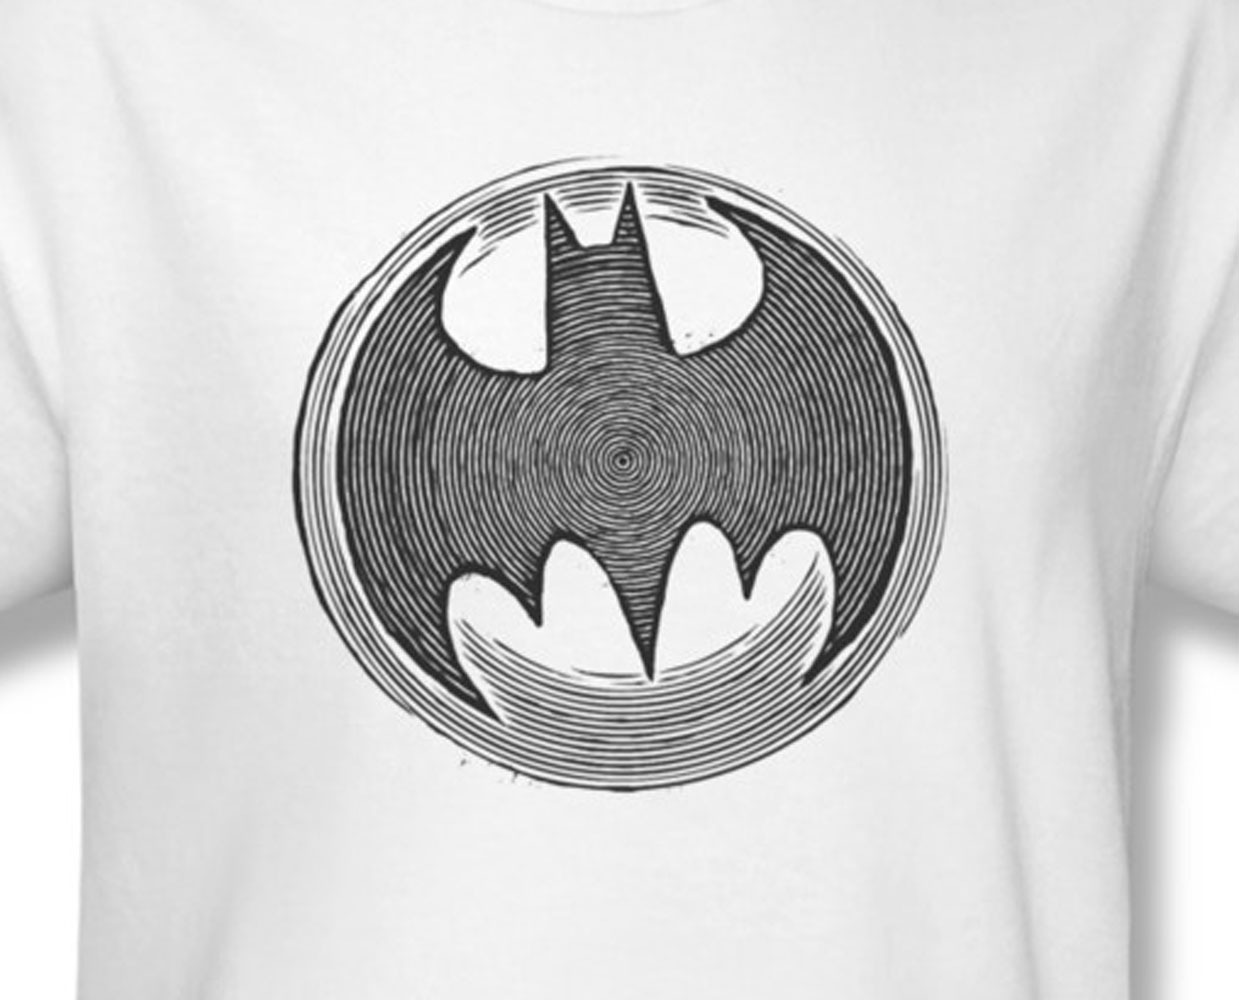 a00647d02 Batman logo the batman chronicles dc comics for sale online graphic tee 2  bm2236 at